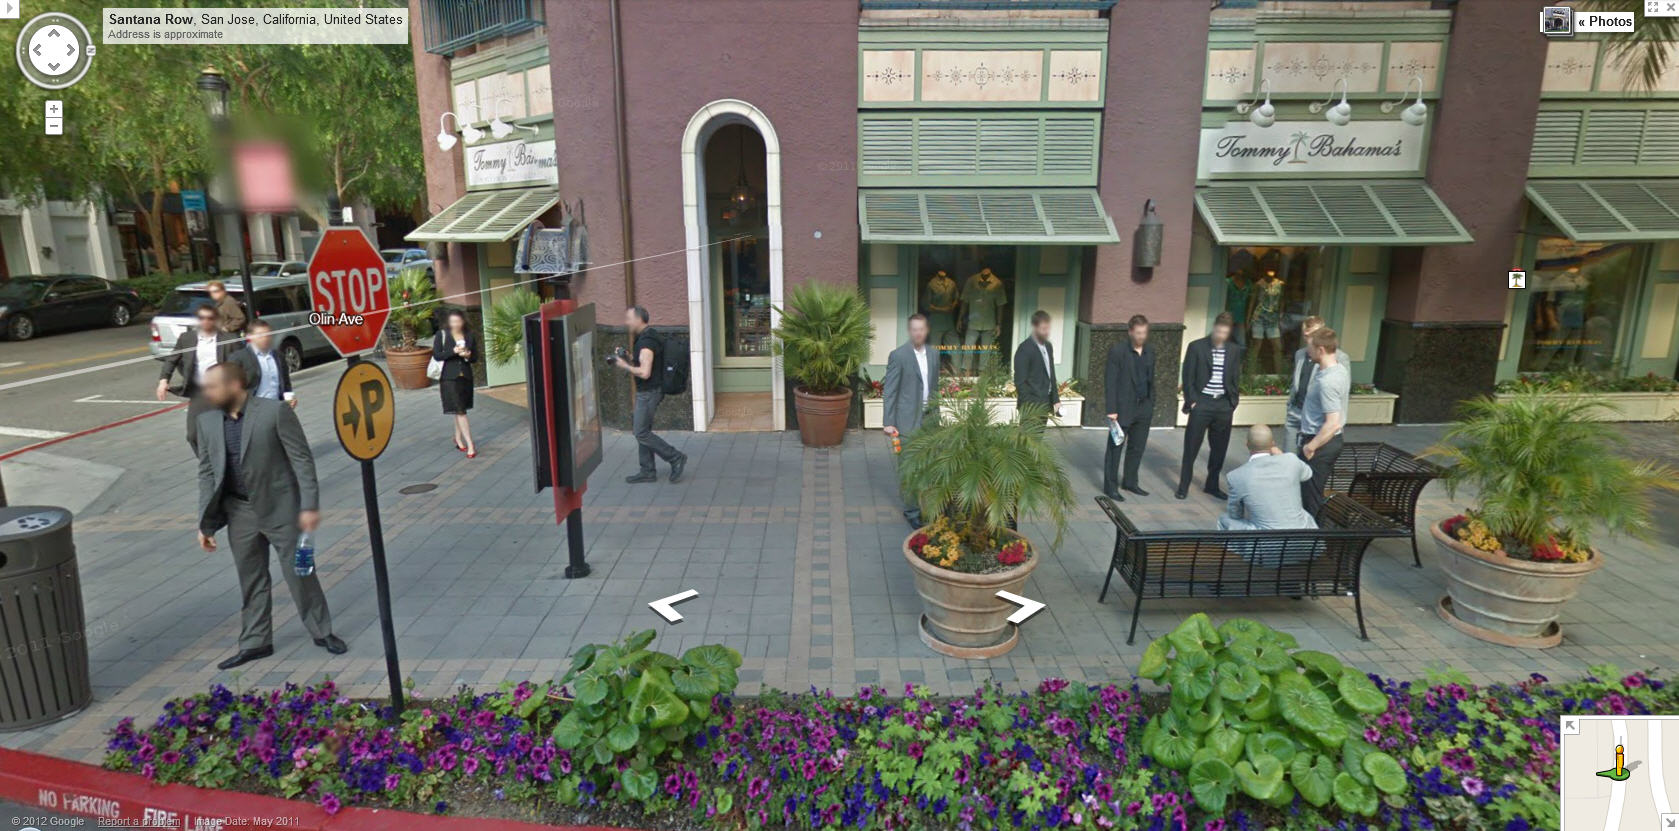 google-street-view-captures-the-vancouver-canucks-in-san-jose-california